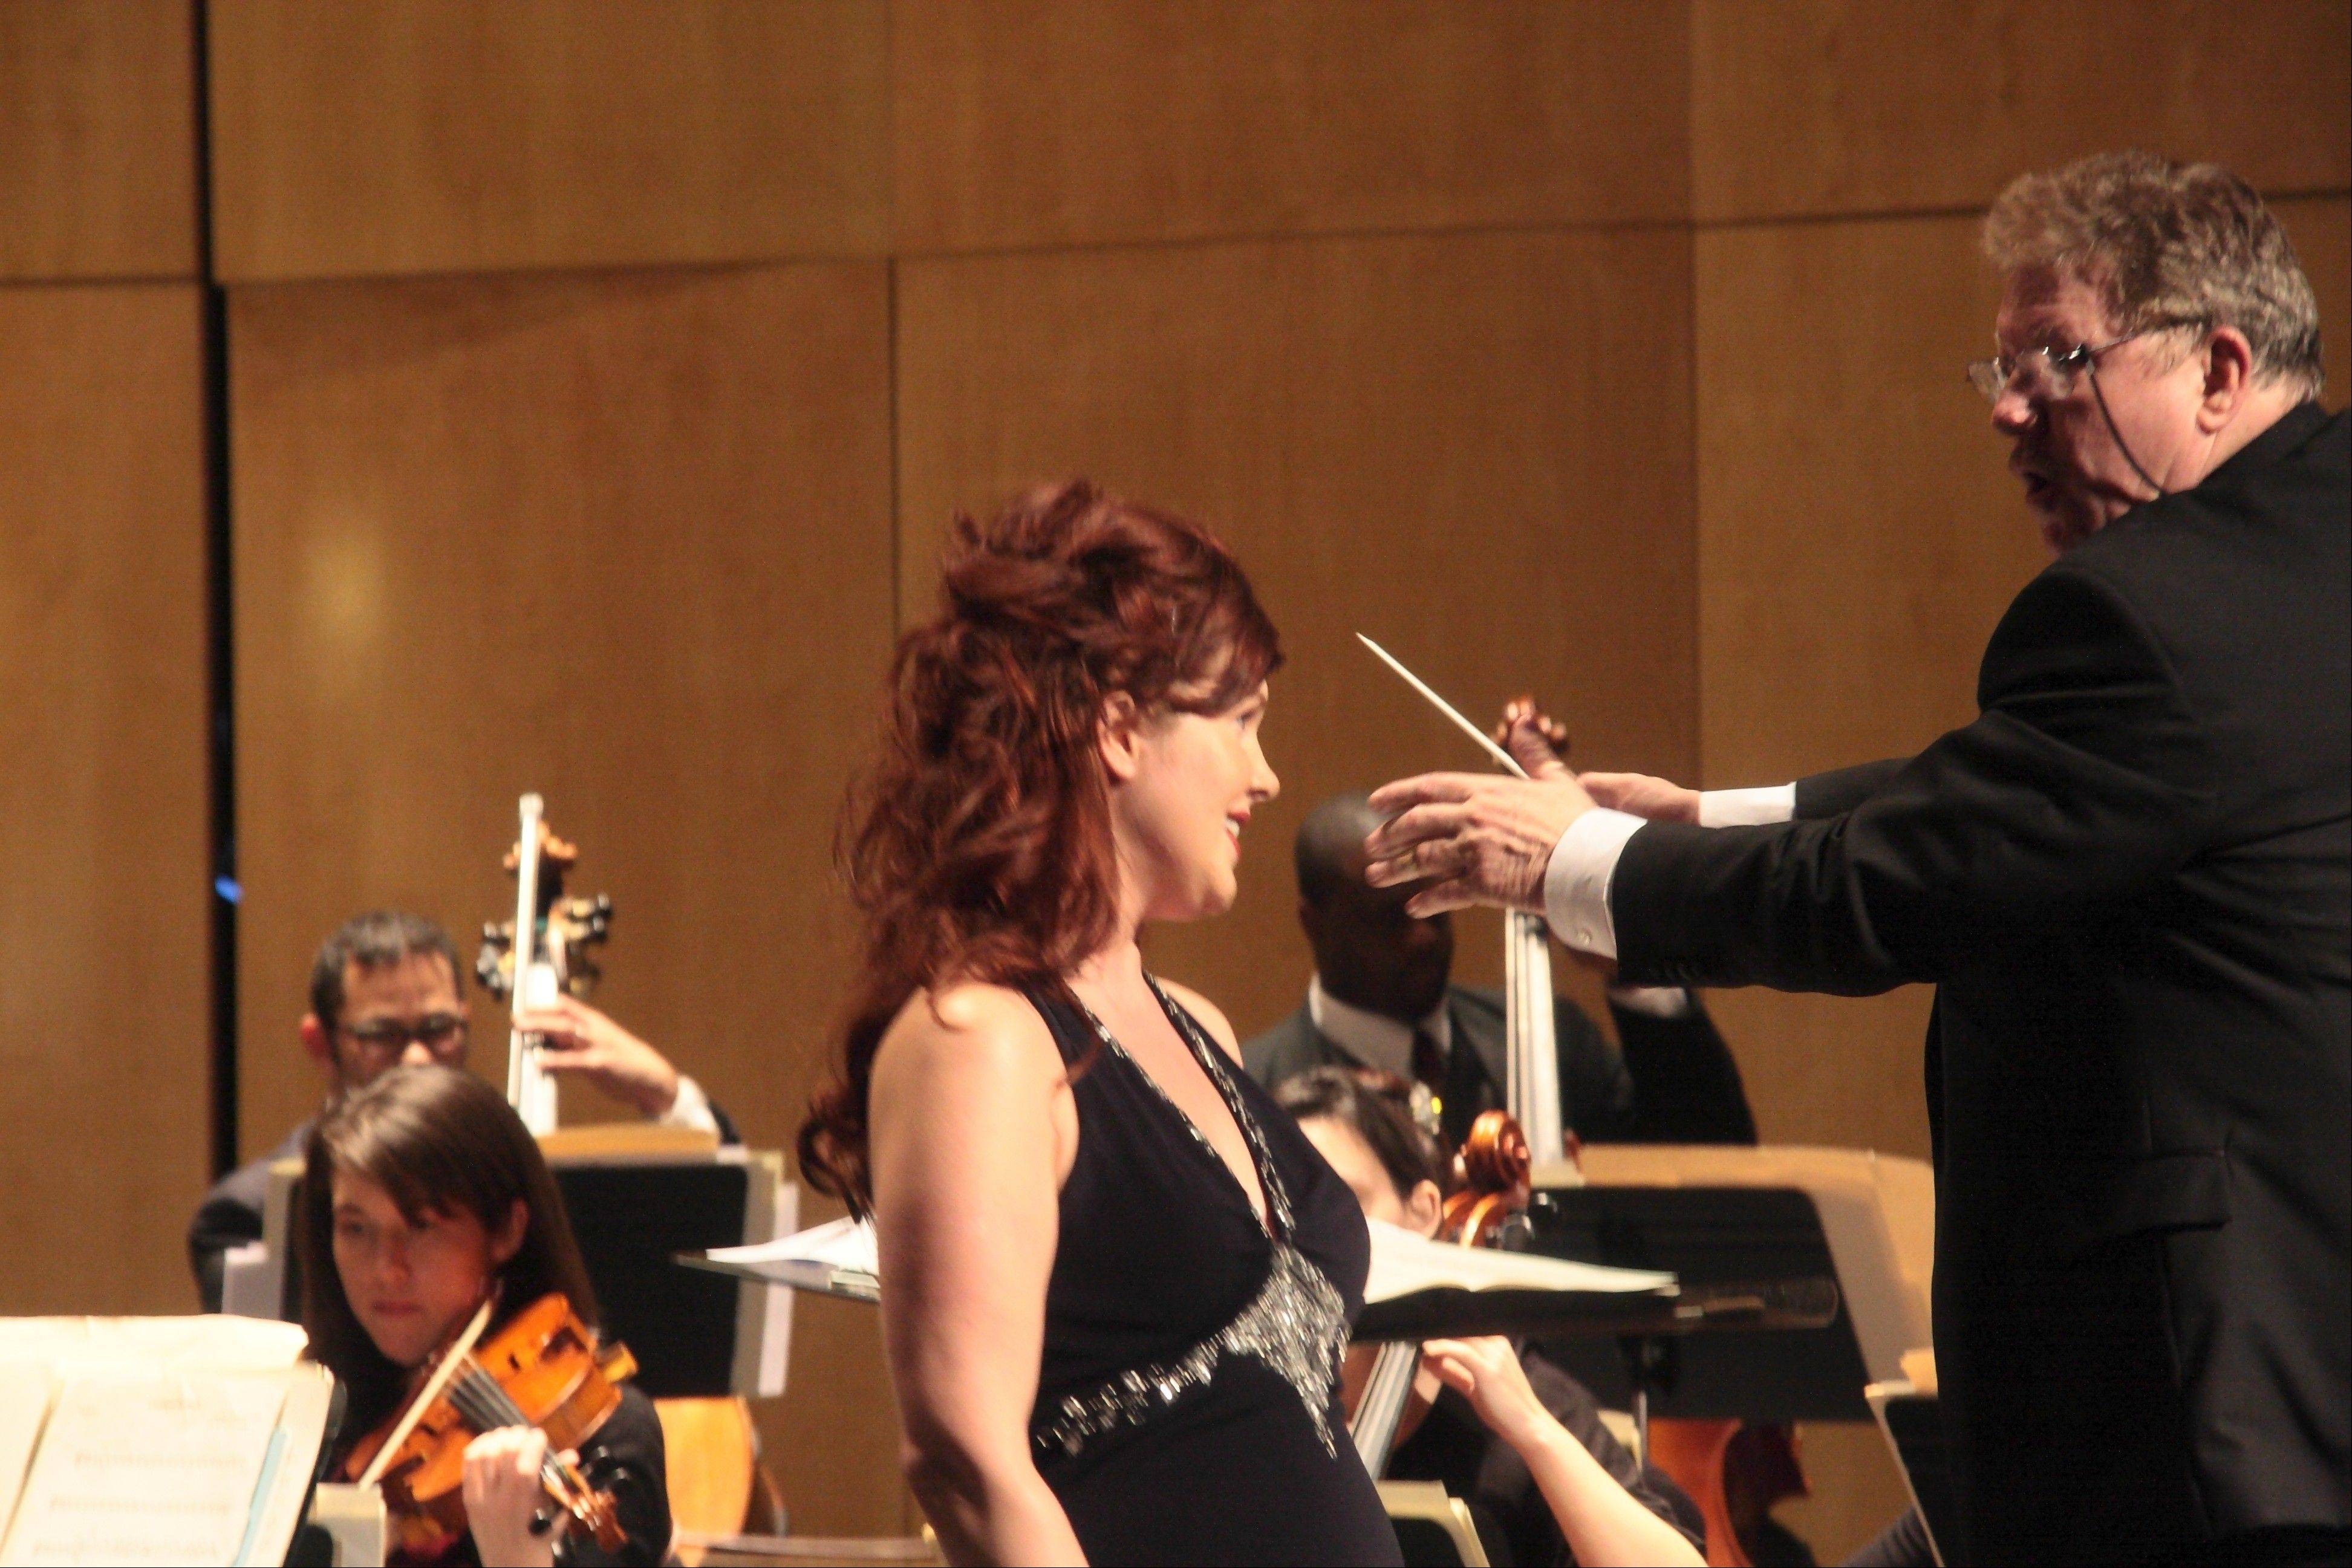 Lindsey Poling performs with the Northwest Festival Orchestra in December 2011 under the direction of Dr. Verne Schwager.